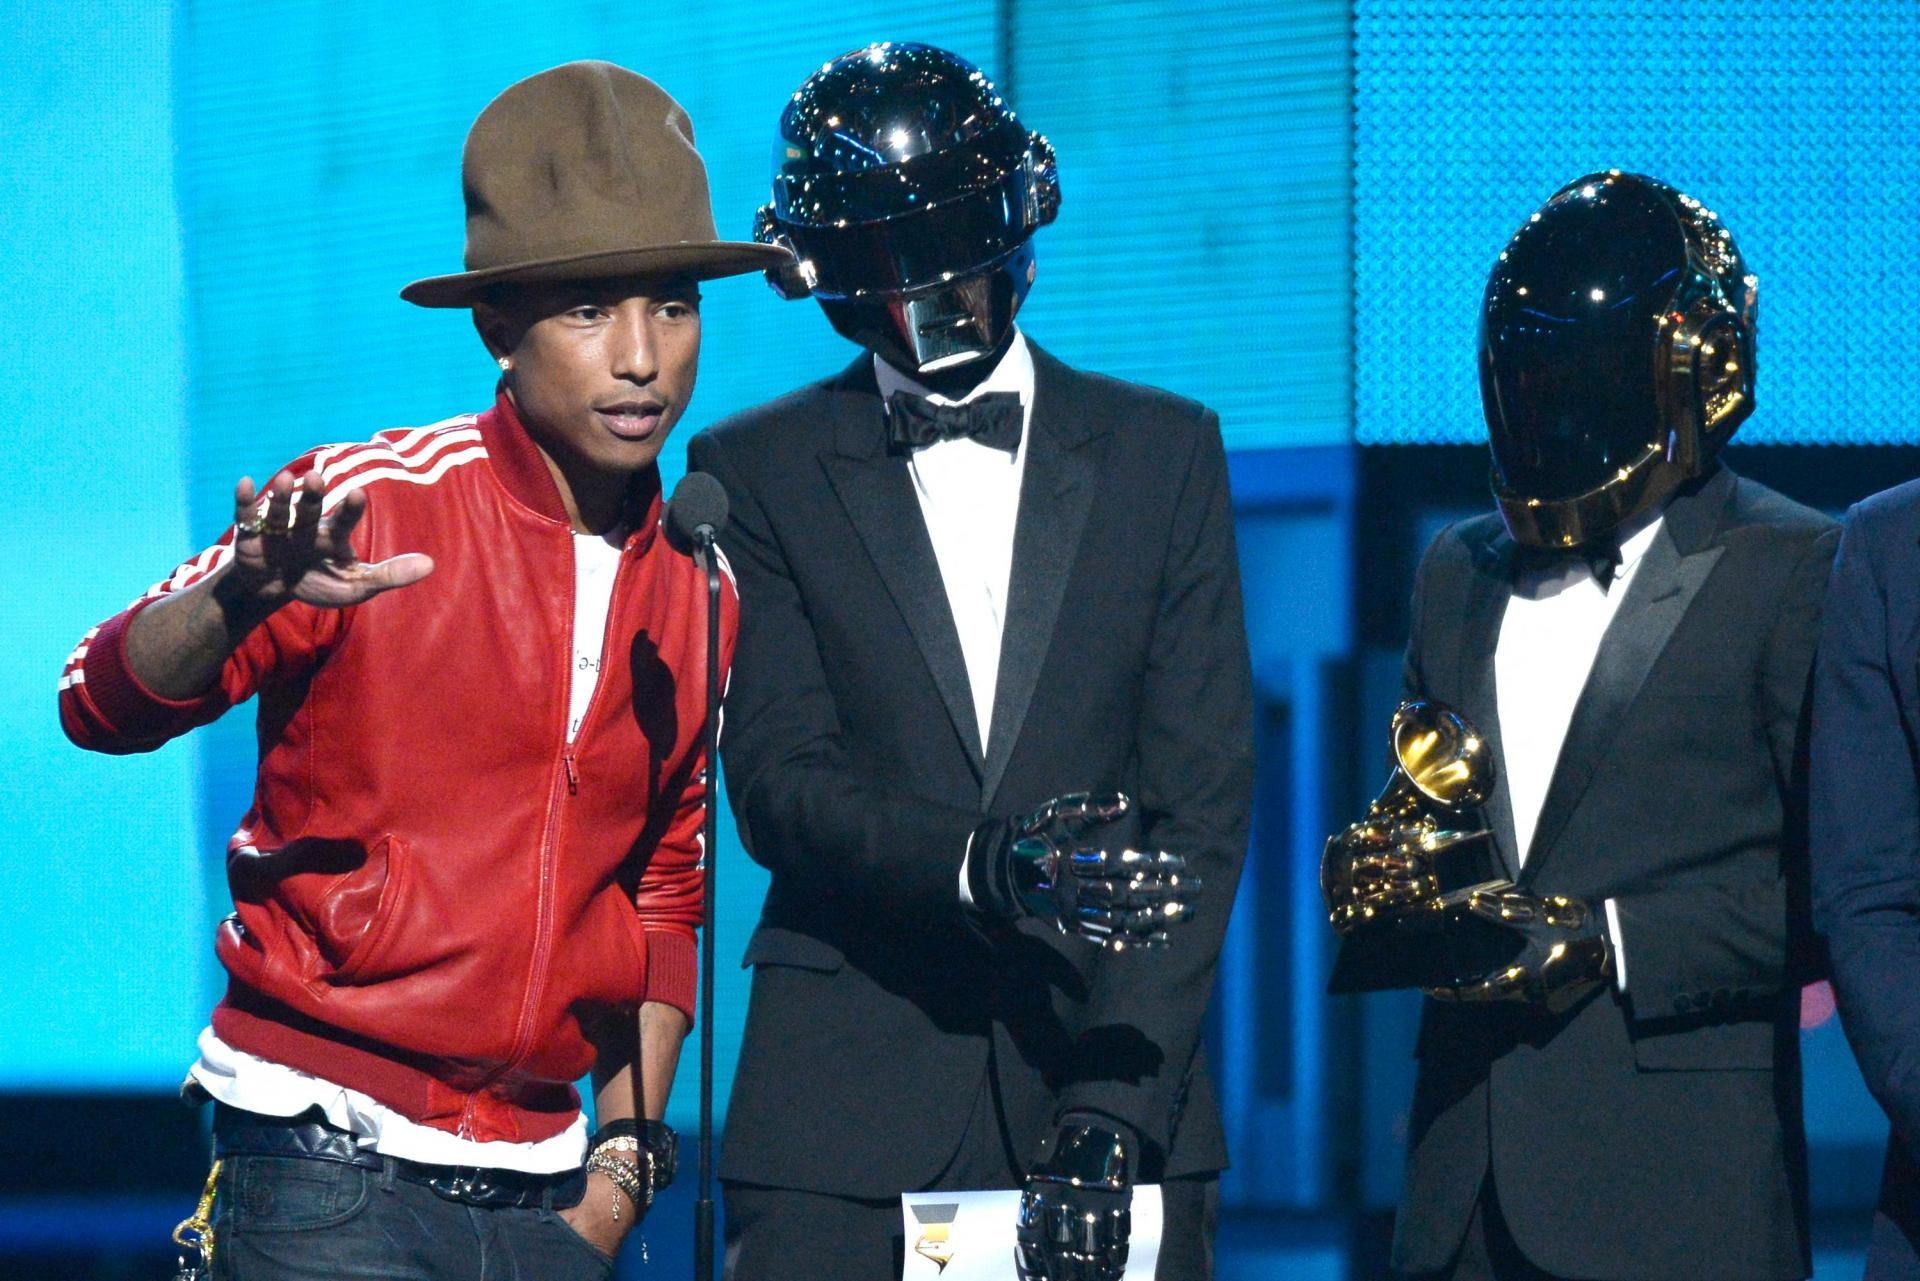 In this file photo taken on January 26, 2014 (left to right) musicians Pharrell Williams, Thomas Bangalter, and Guy-Manuel de Homem-Christo of Daft Punk accept the Best Pop Duo/Group Performance award for 'Get Lucky'. Photo: Kevork Djansezian/Getty Images North America/AFP